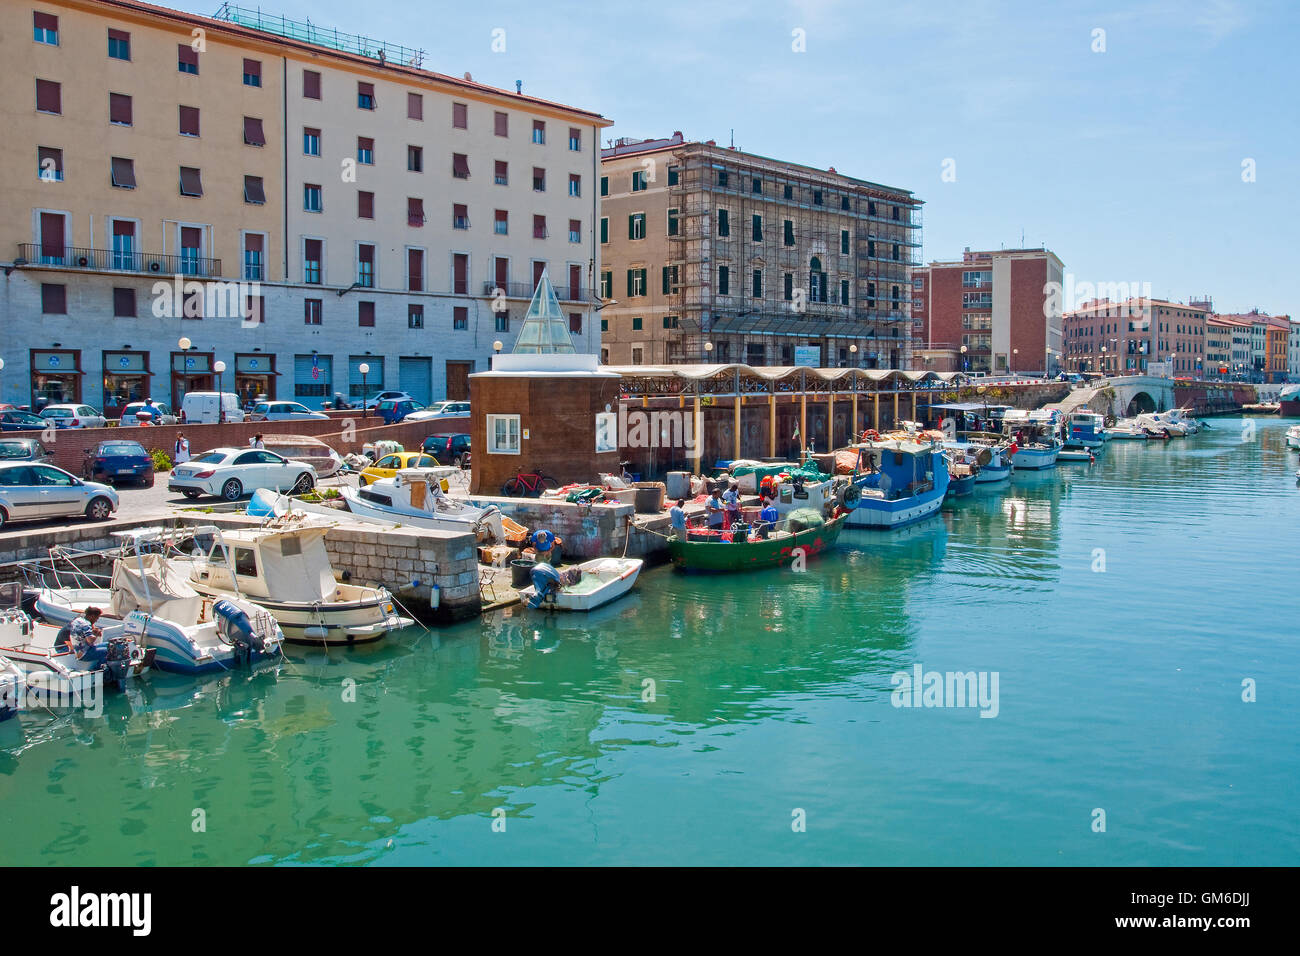 Inner Harbour, Port of Livorno, Italy - Stock Image